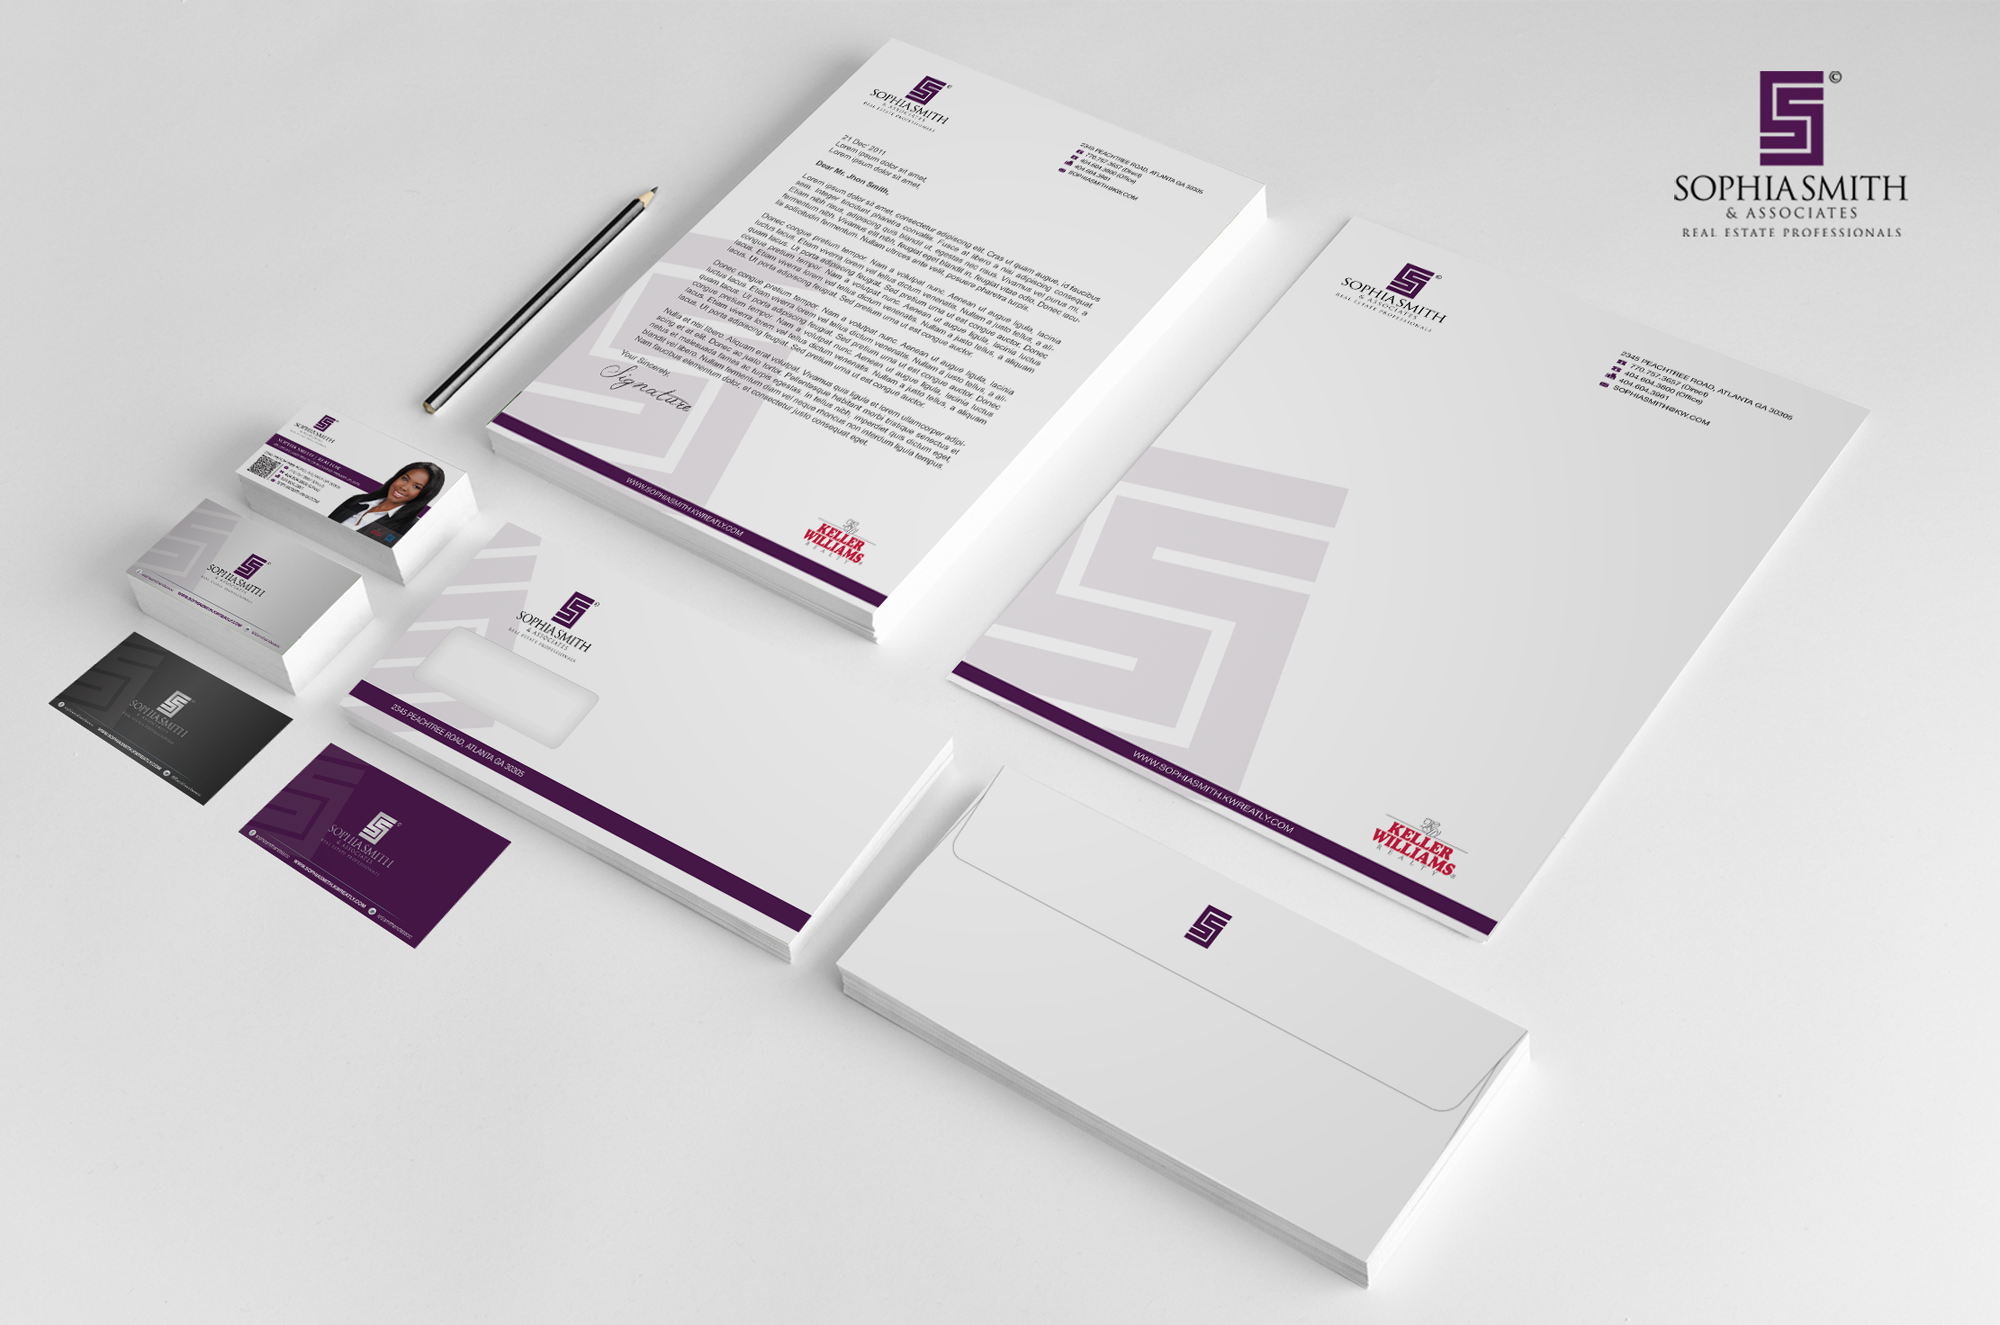 Help Sophia Smith & Associates Real Estate Professionals with a new stationery